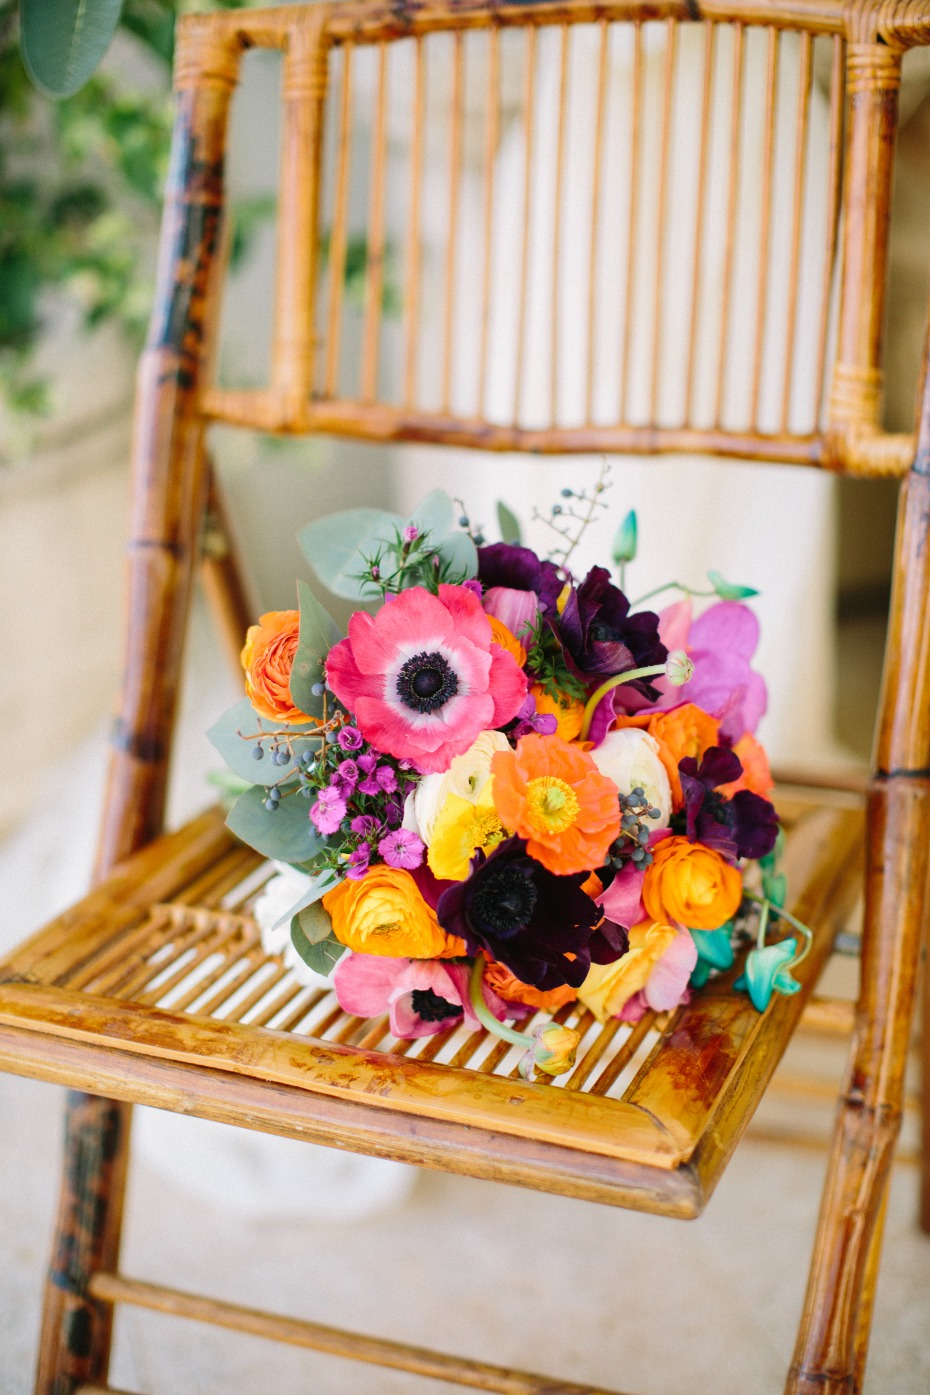 Small and colorful wedding bouquet